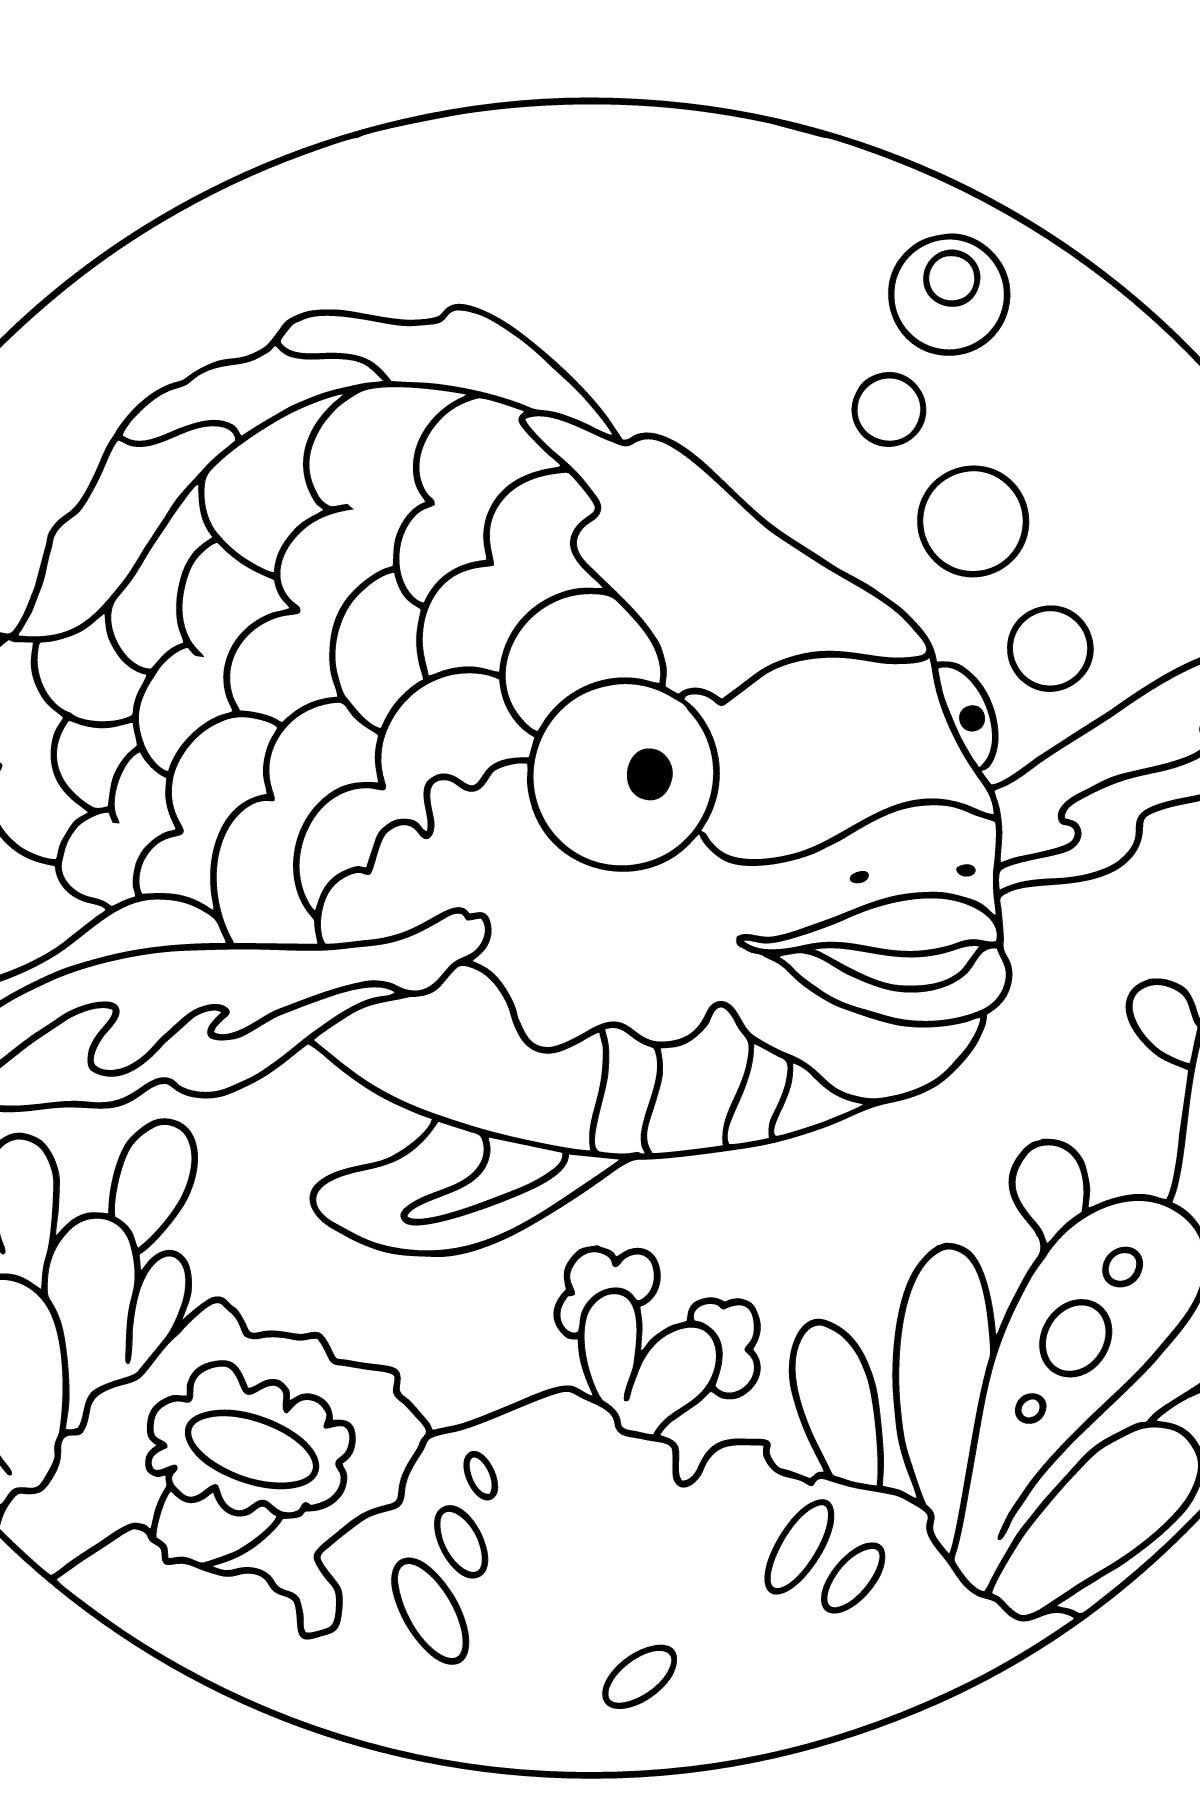 Coloring Page - A Fish with Multicolored Scales - Coloring Pages for Children